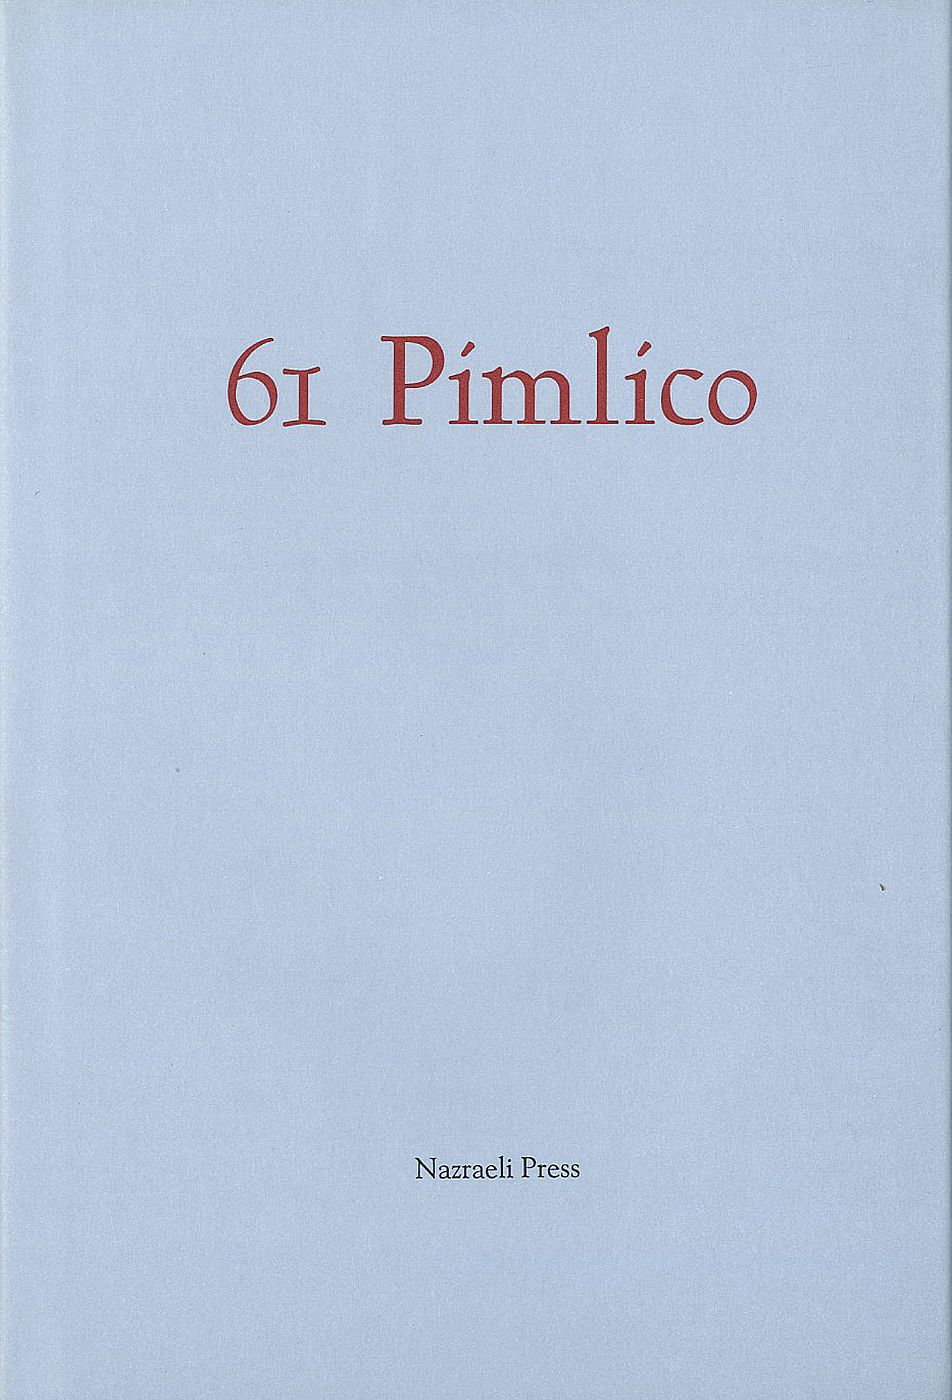 Bill Jay: 61 Pimlico: The Secret Journal of Henry Haylor